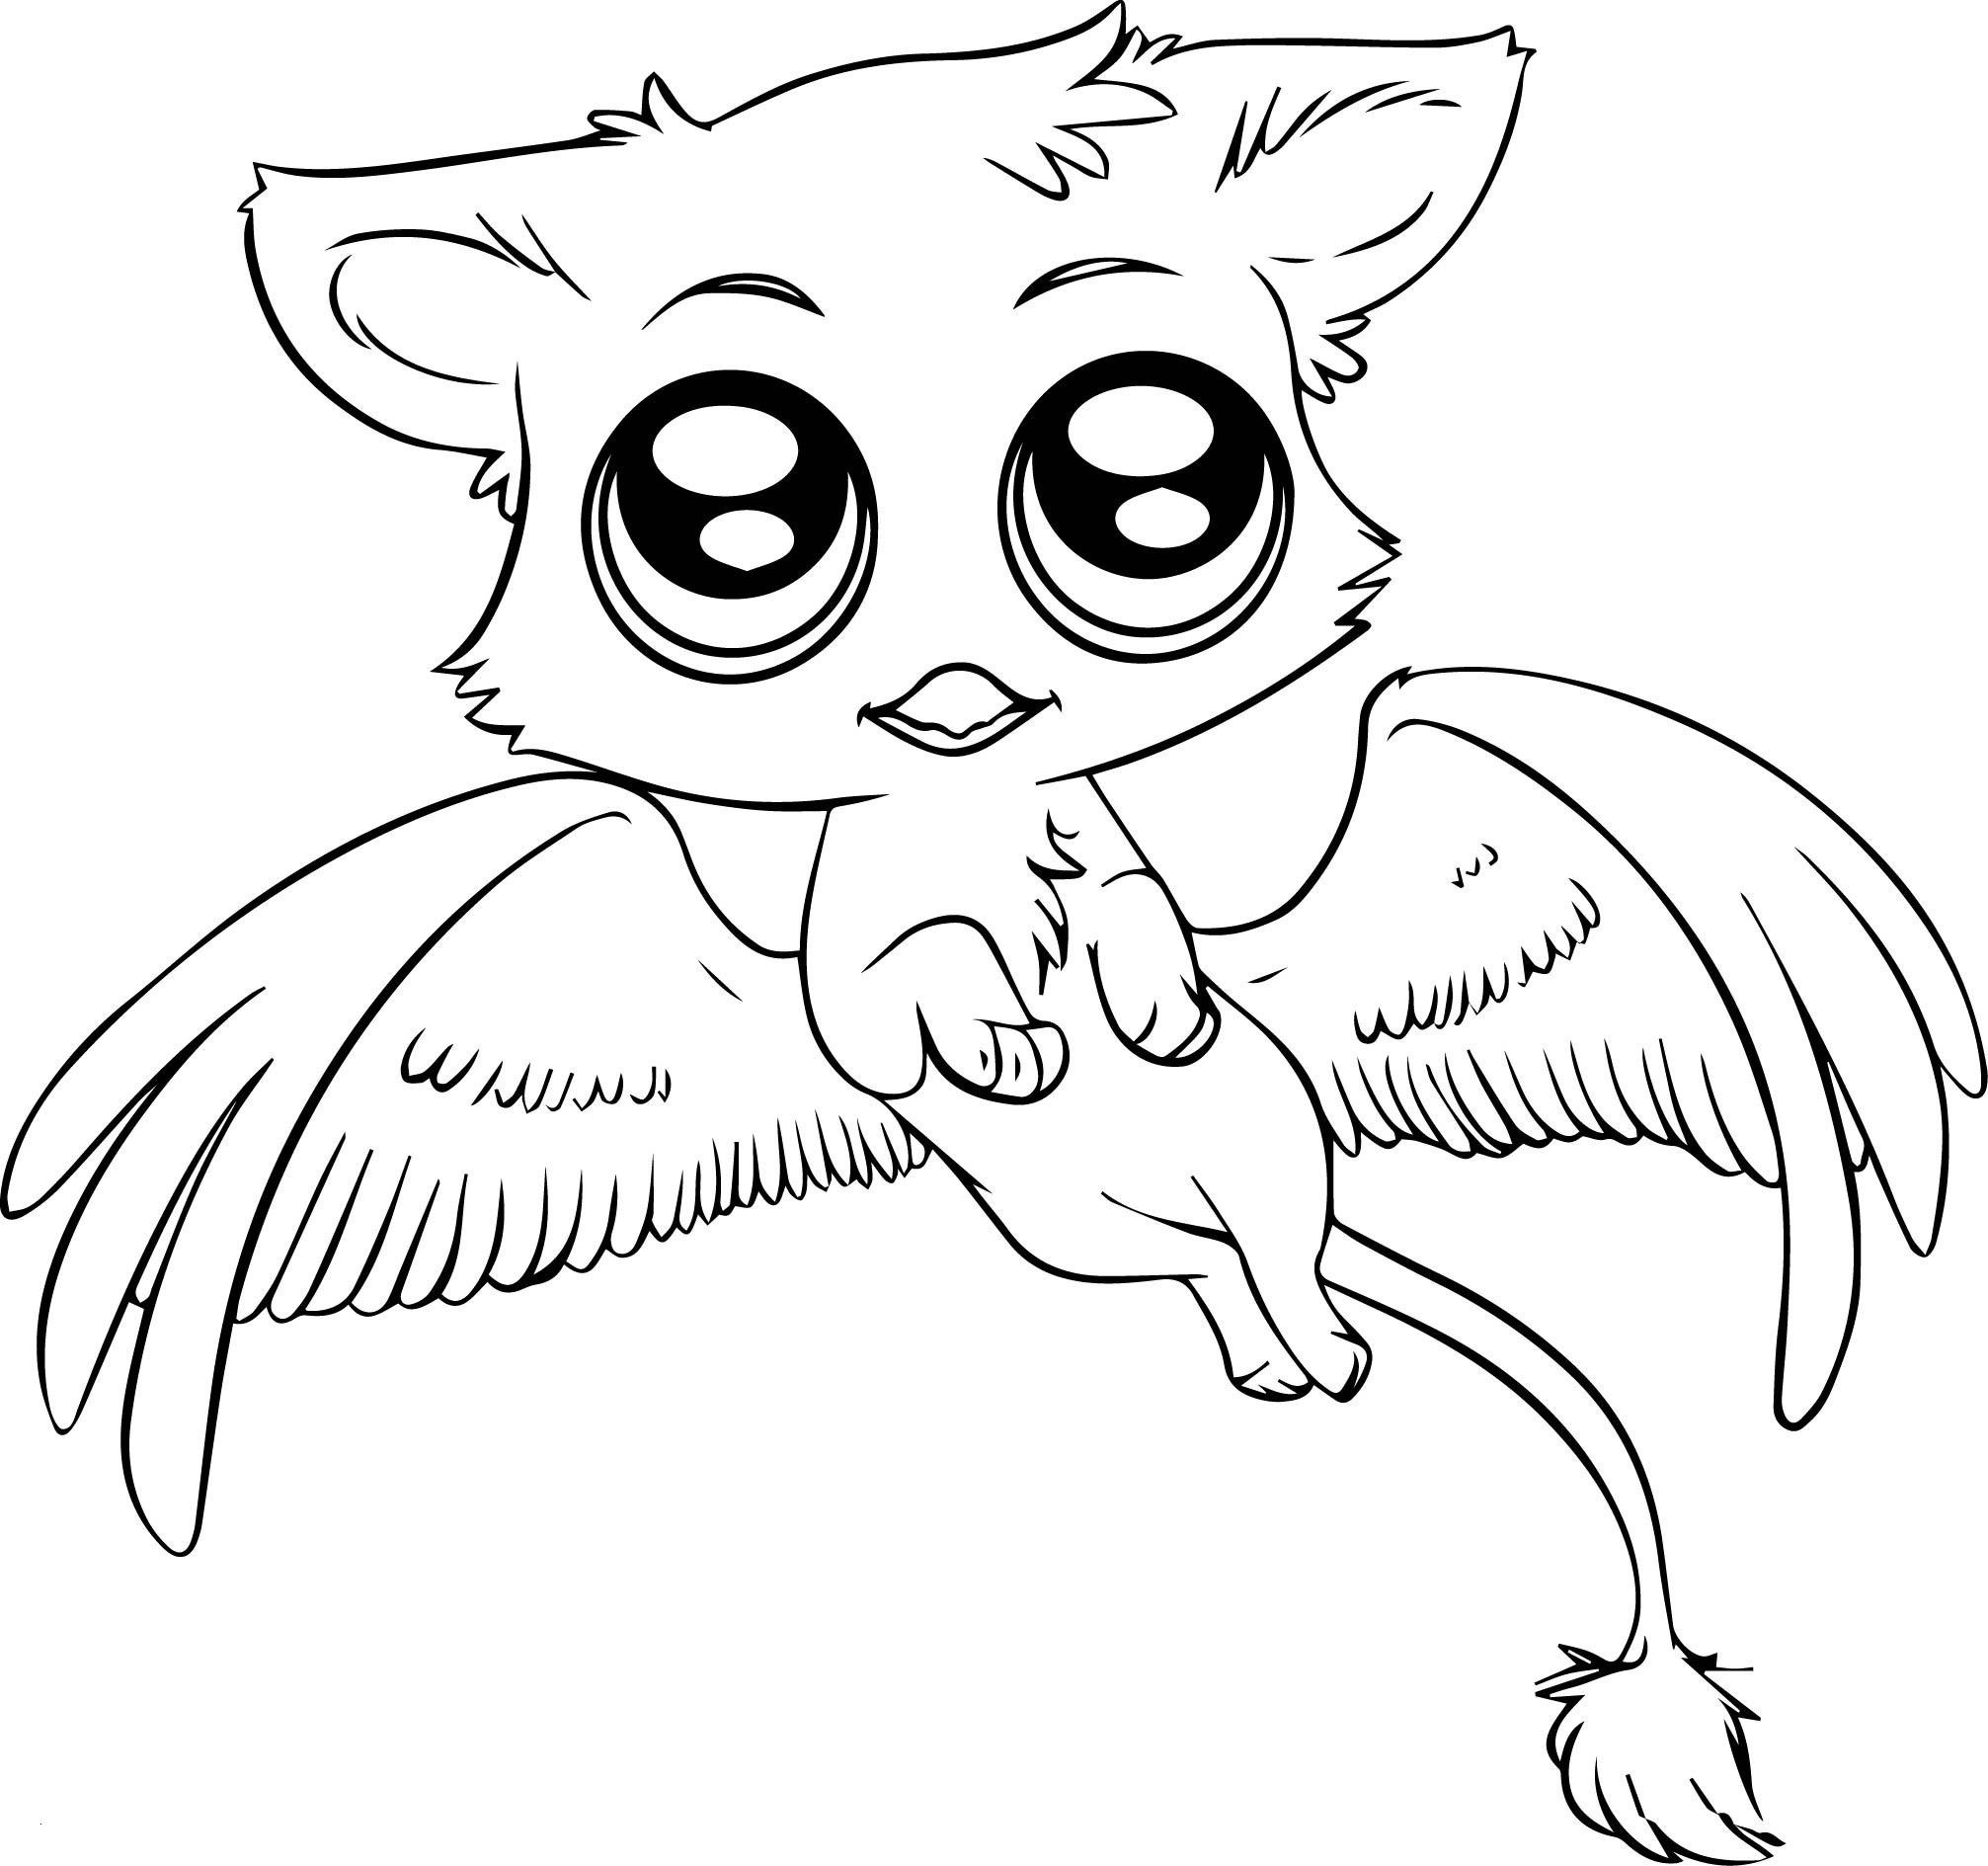 Cute Baby Animal Coloring Pages to Print – Through the thousand